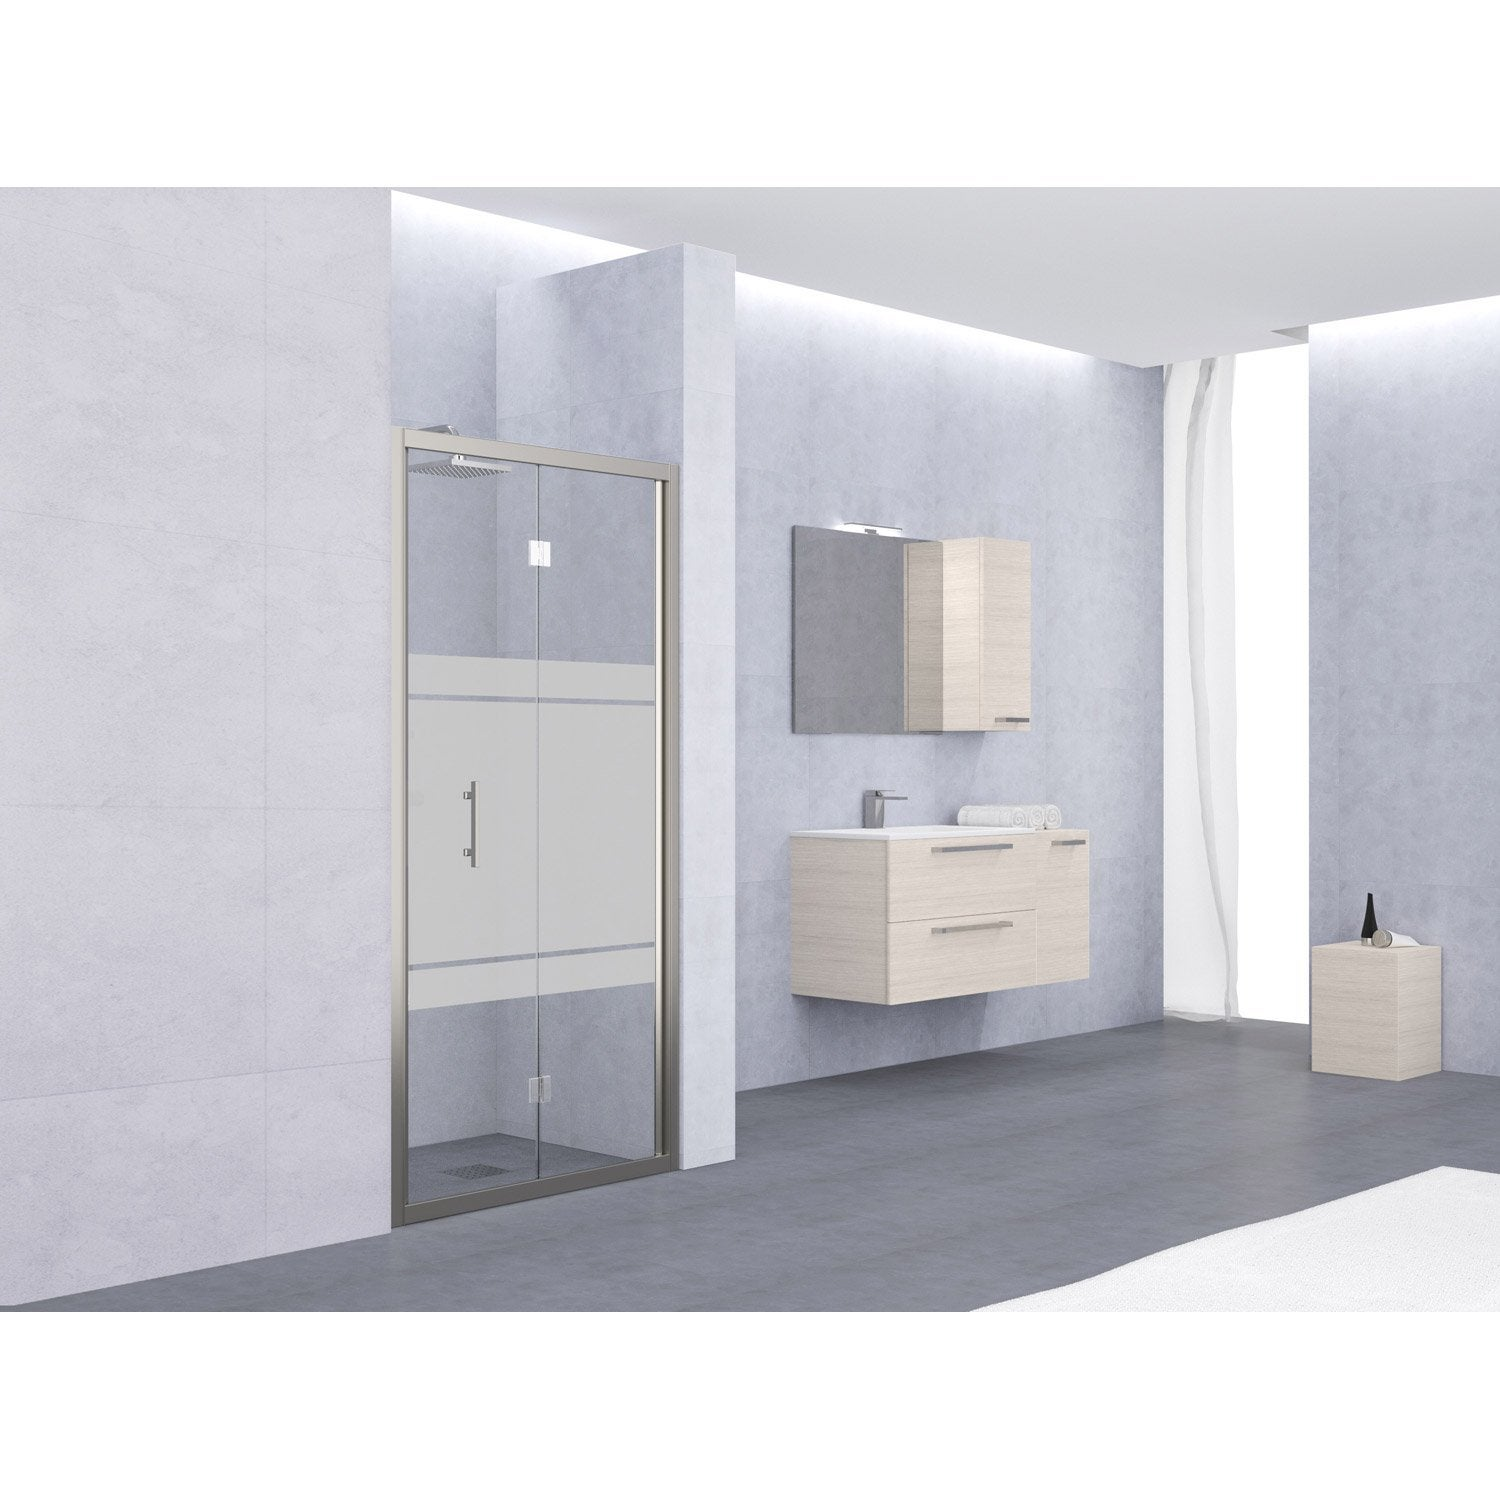 porte de douche pliante 72 78 cm profil chrom elyt. Black Bedroom Furniture Sets. Home Design Ideas